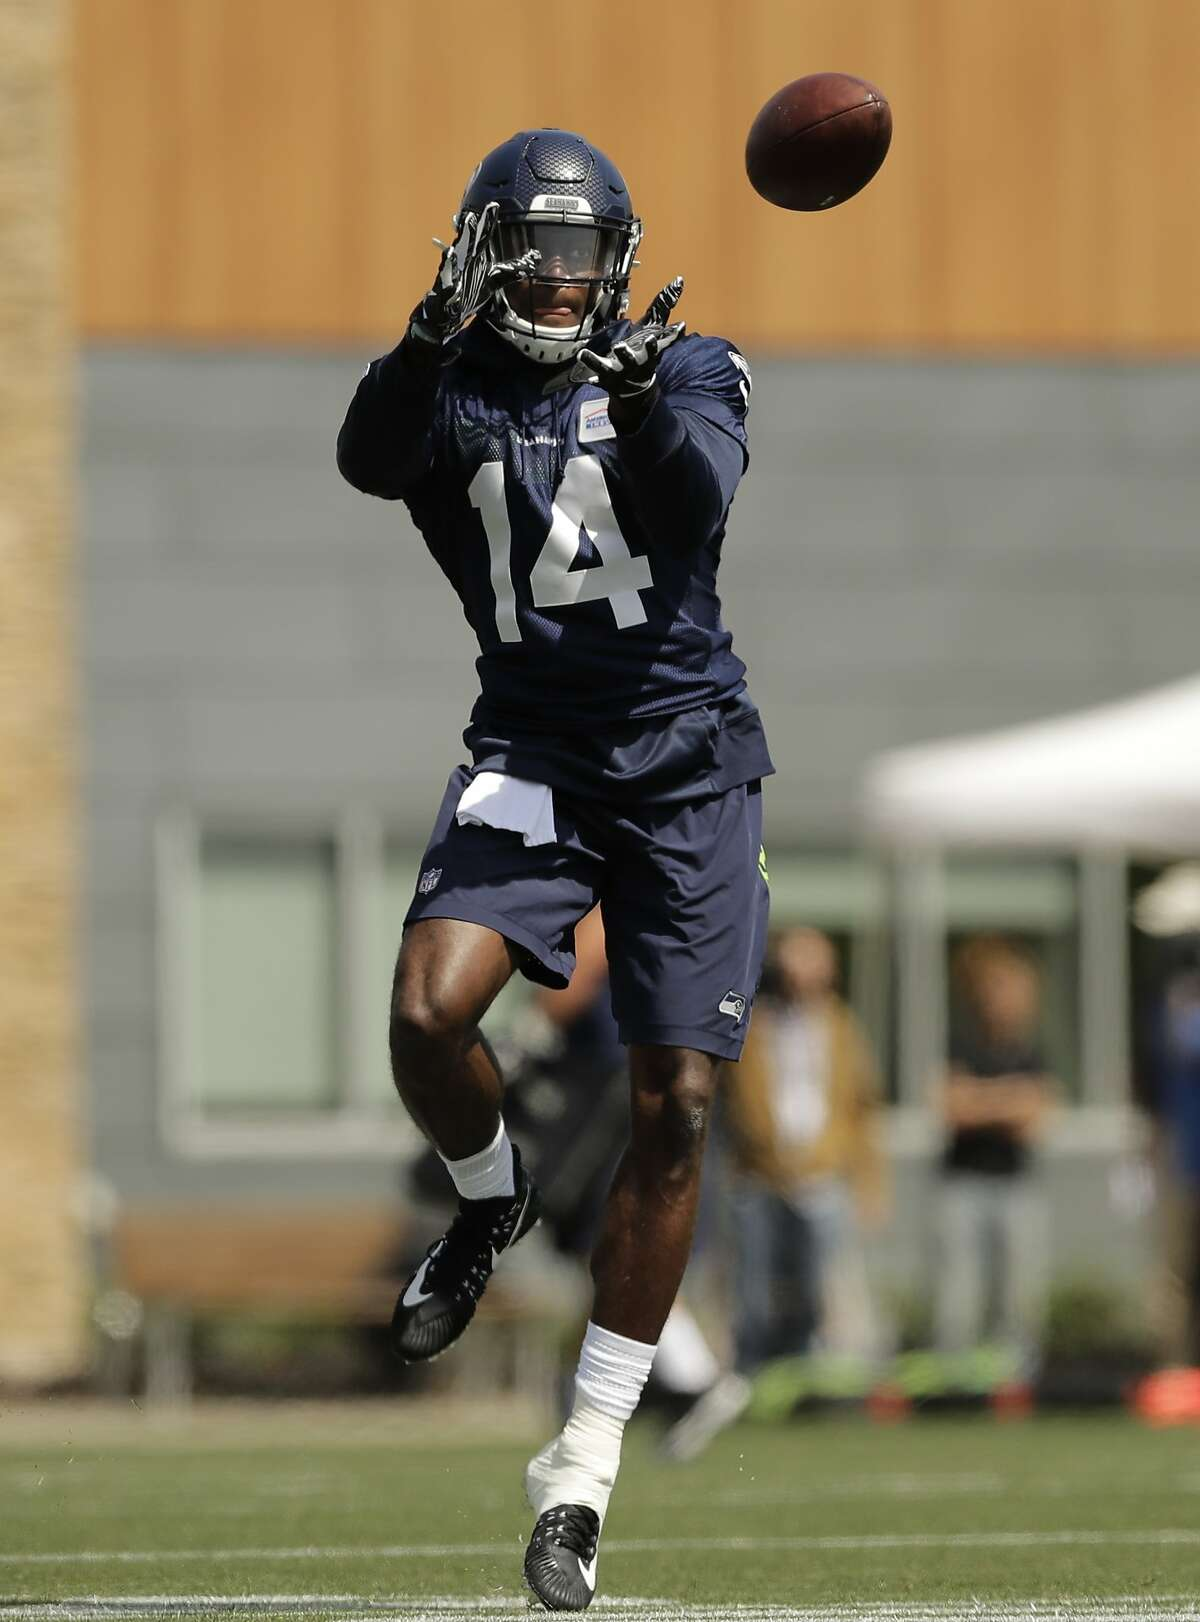 Seattle Seahawks wide receiver DK Metcalf makes a catch on the first day of NFL football rookie mini camp, Friday, May 3, 2019, in Renton, Wash. (AP Photo/Ted S. Warren)